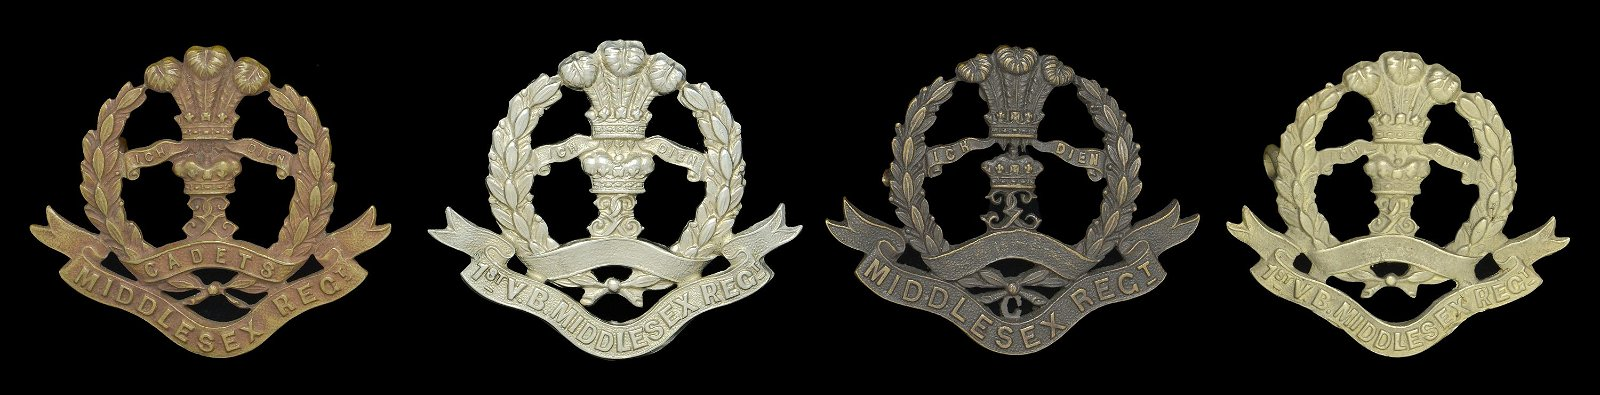 Militaria to the 57th, 77th, and Middlesex Regiments